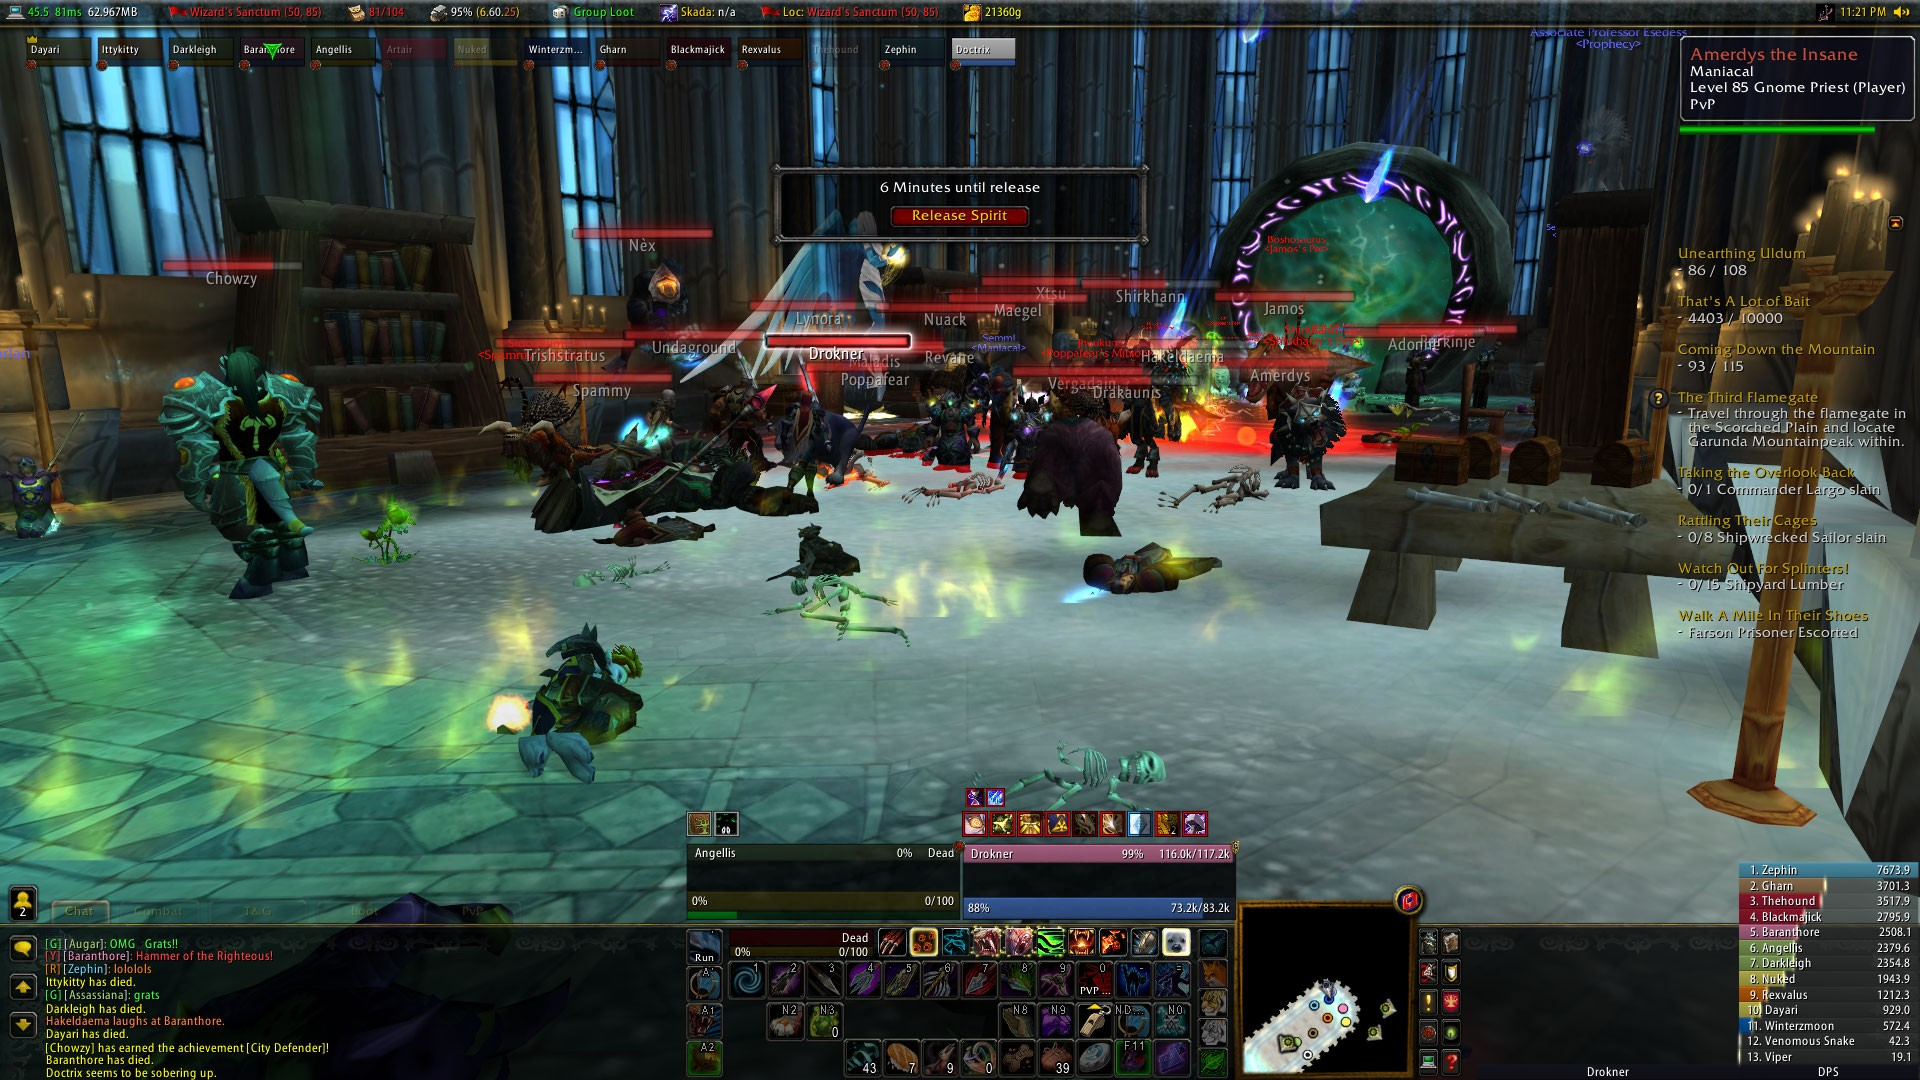 World of Warcraft - Steadfast held the Mages Tower for 30 minutes until the Alliance came in full force and wiped us. All in fun, ;D